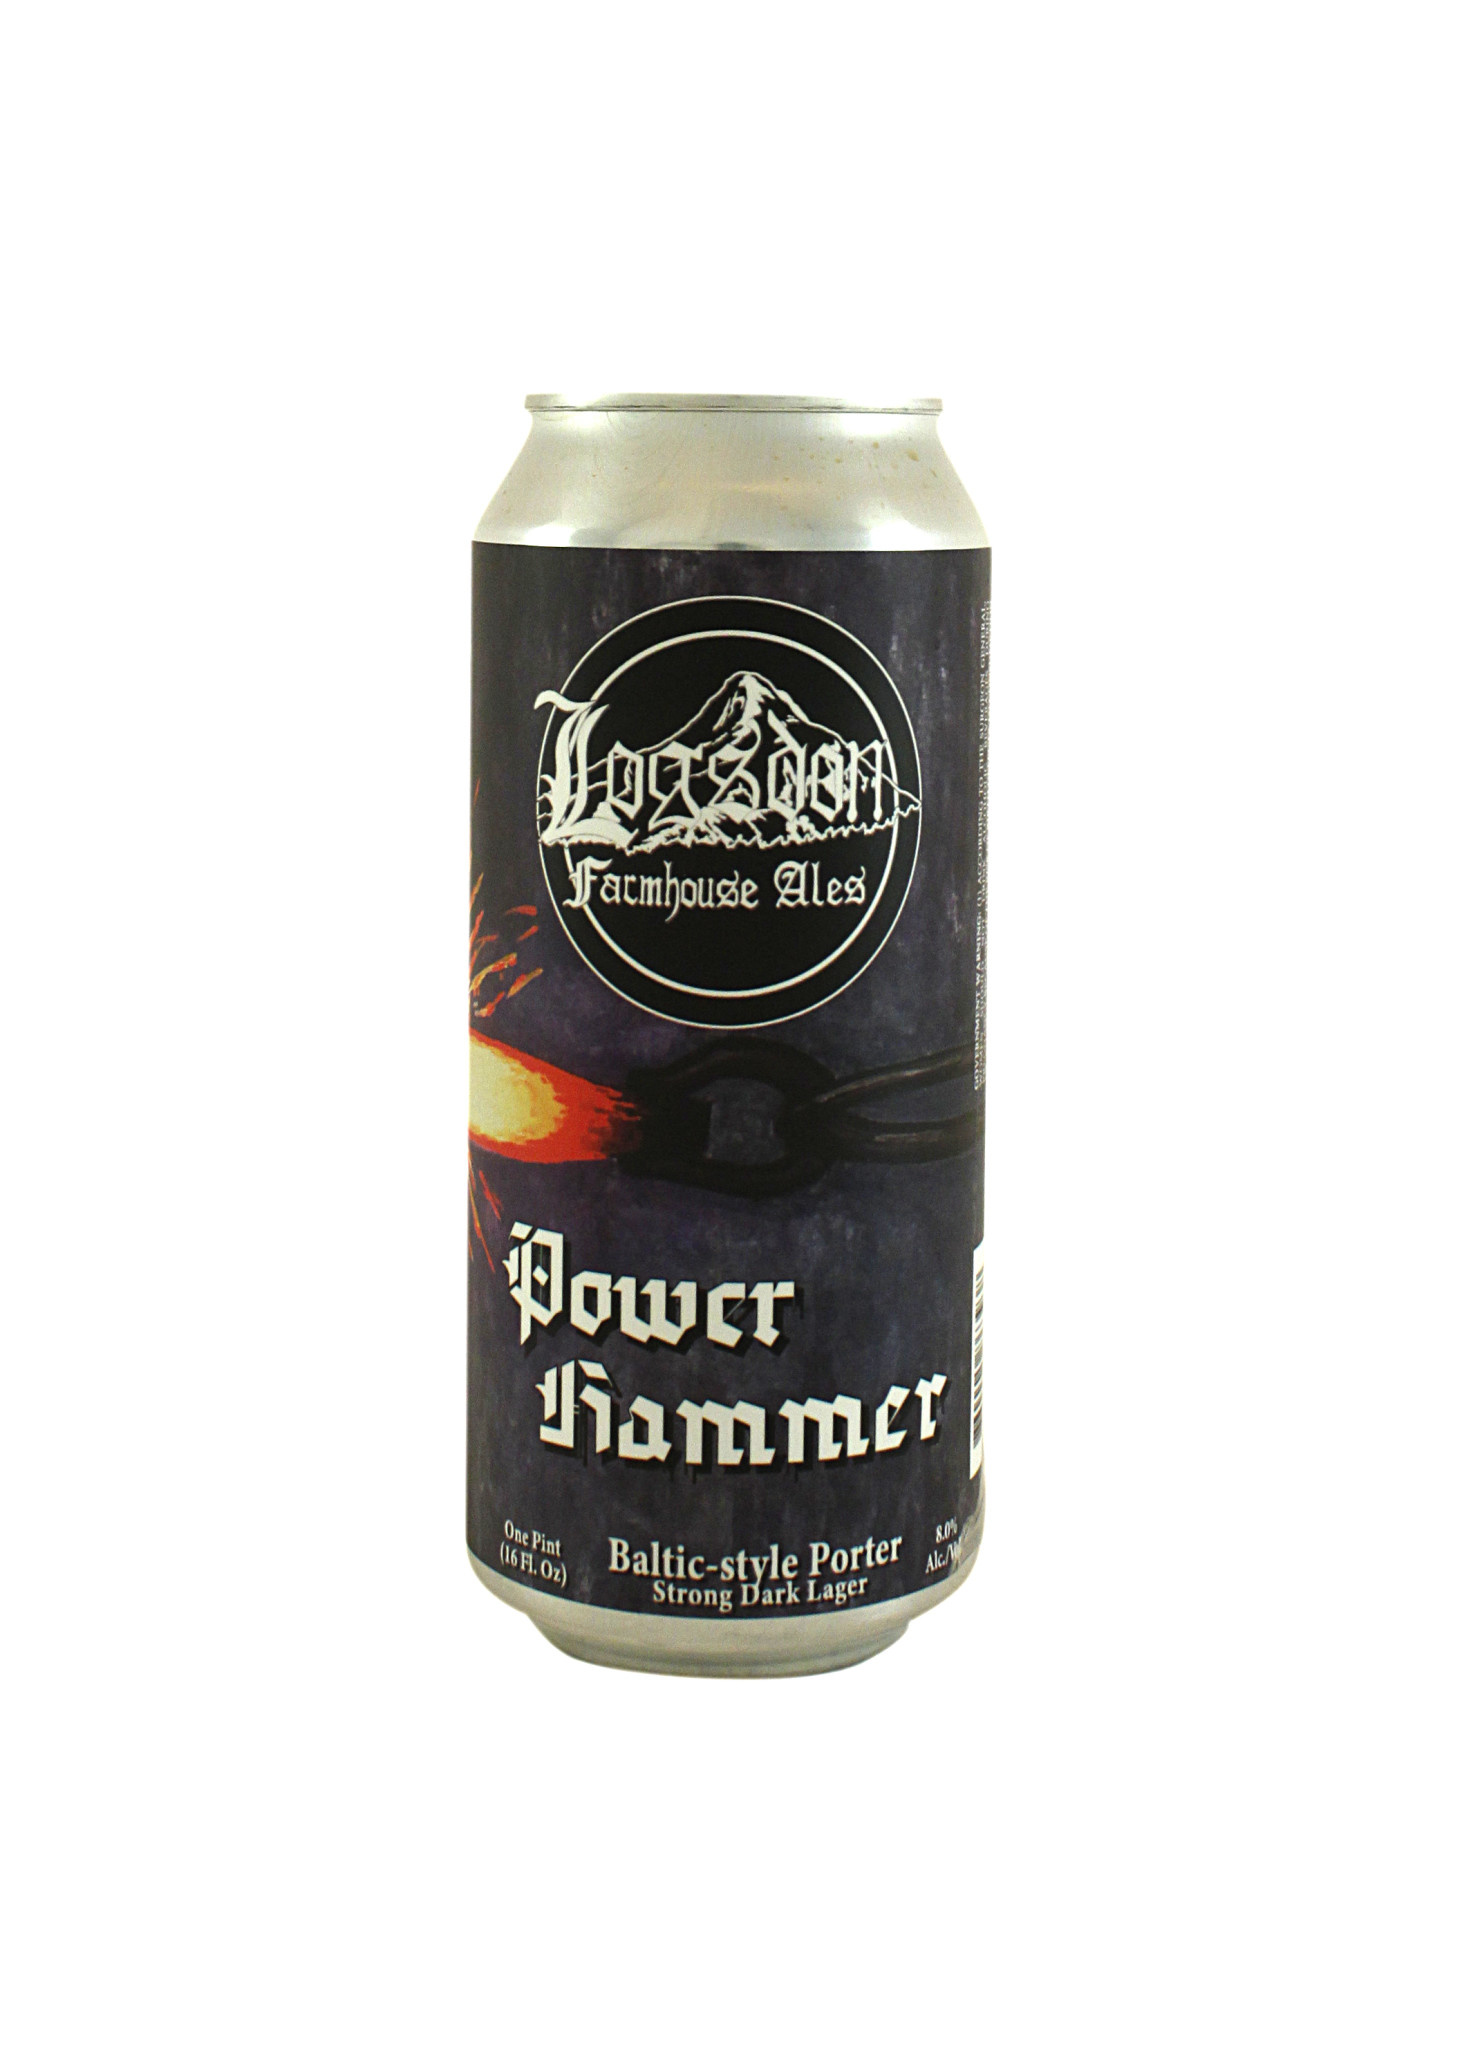 "Logsdon Farmhouse Ales ""Power Hammer"" Baltic-Style Porter 16oz. can - Washougal, Washington"